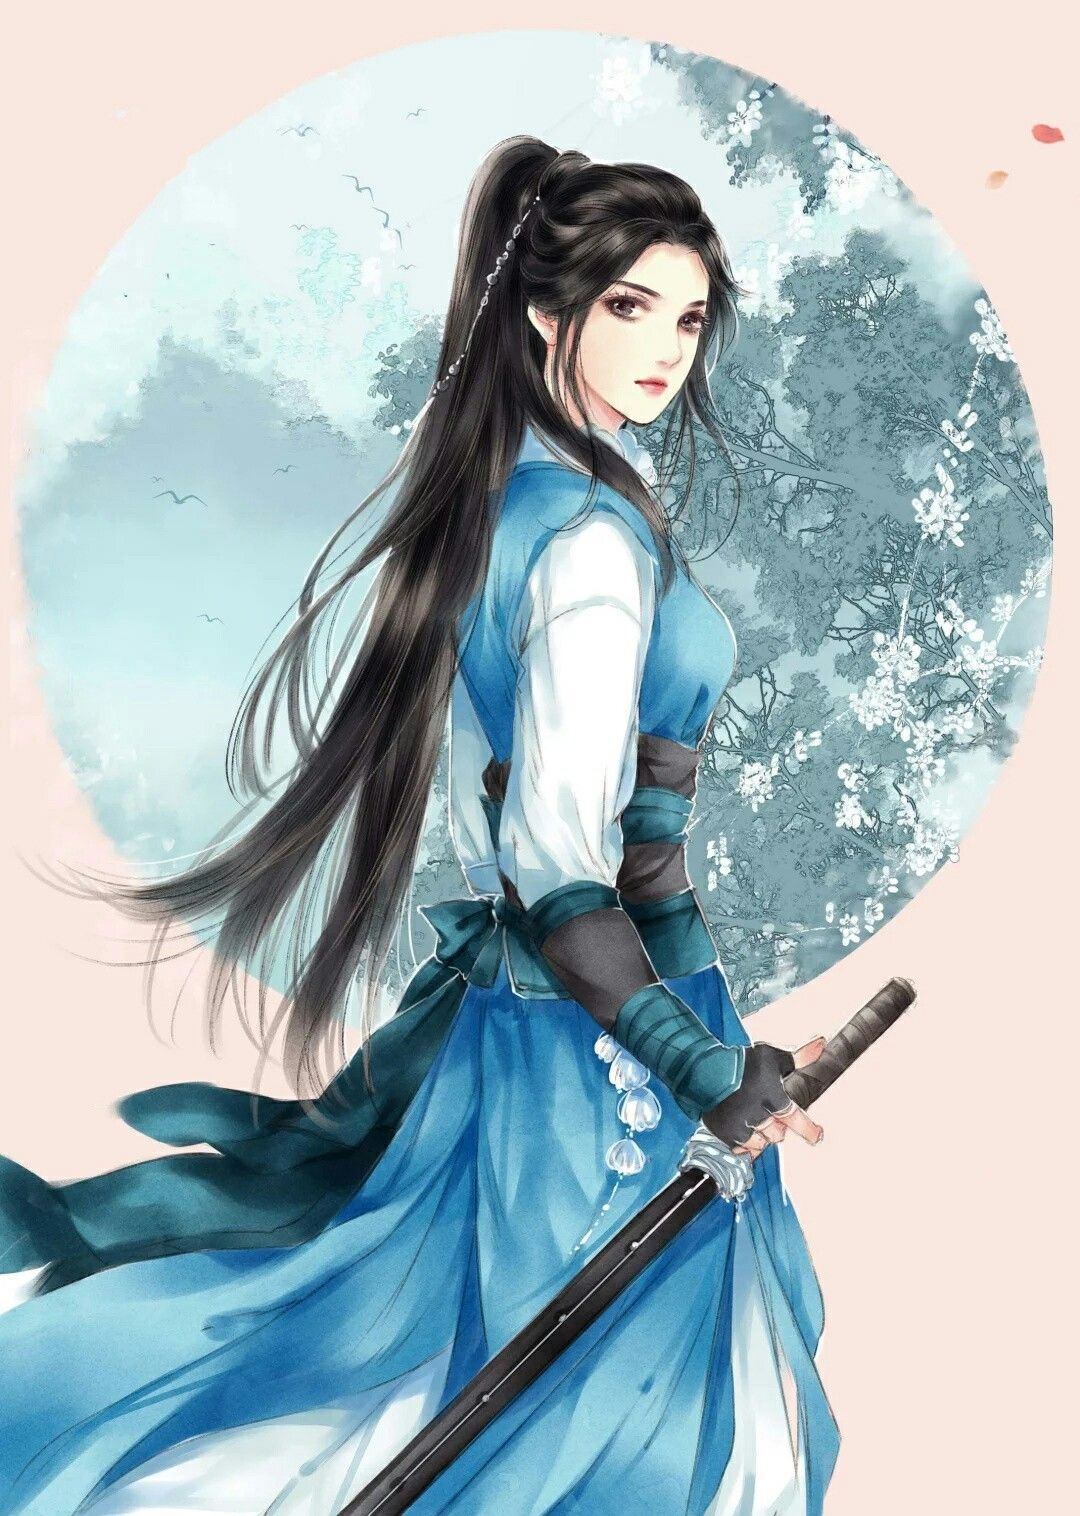 Reyna Delanoy Anime warrior, Chinese art girl, Anime